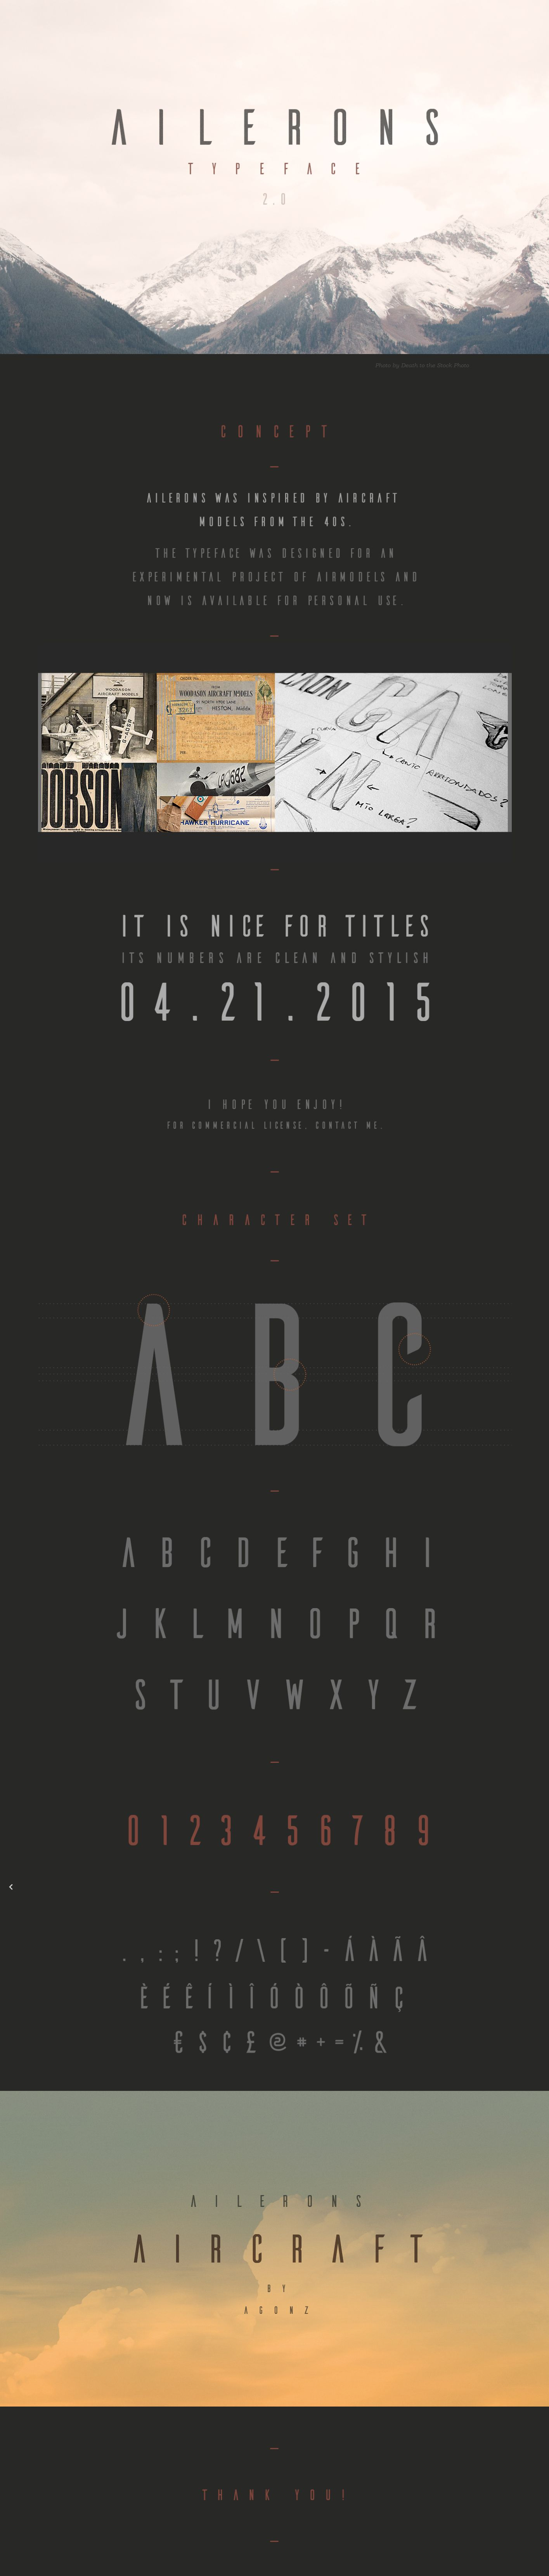 Ailerons Typeface on Behance